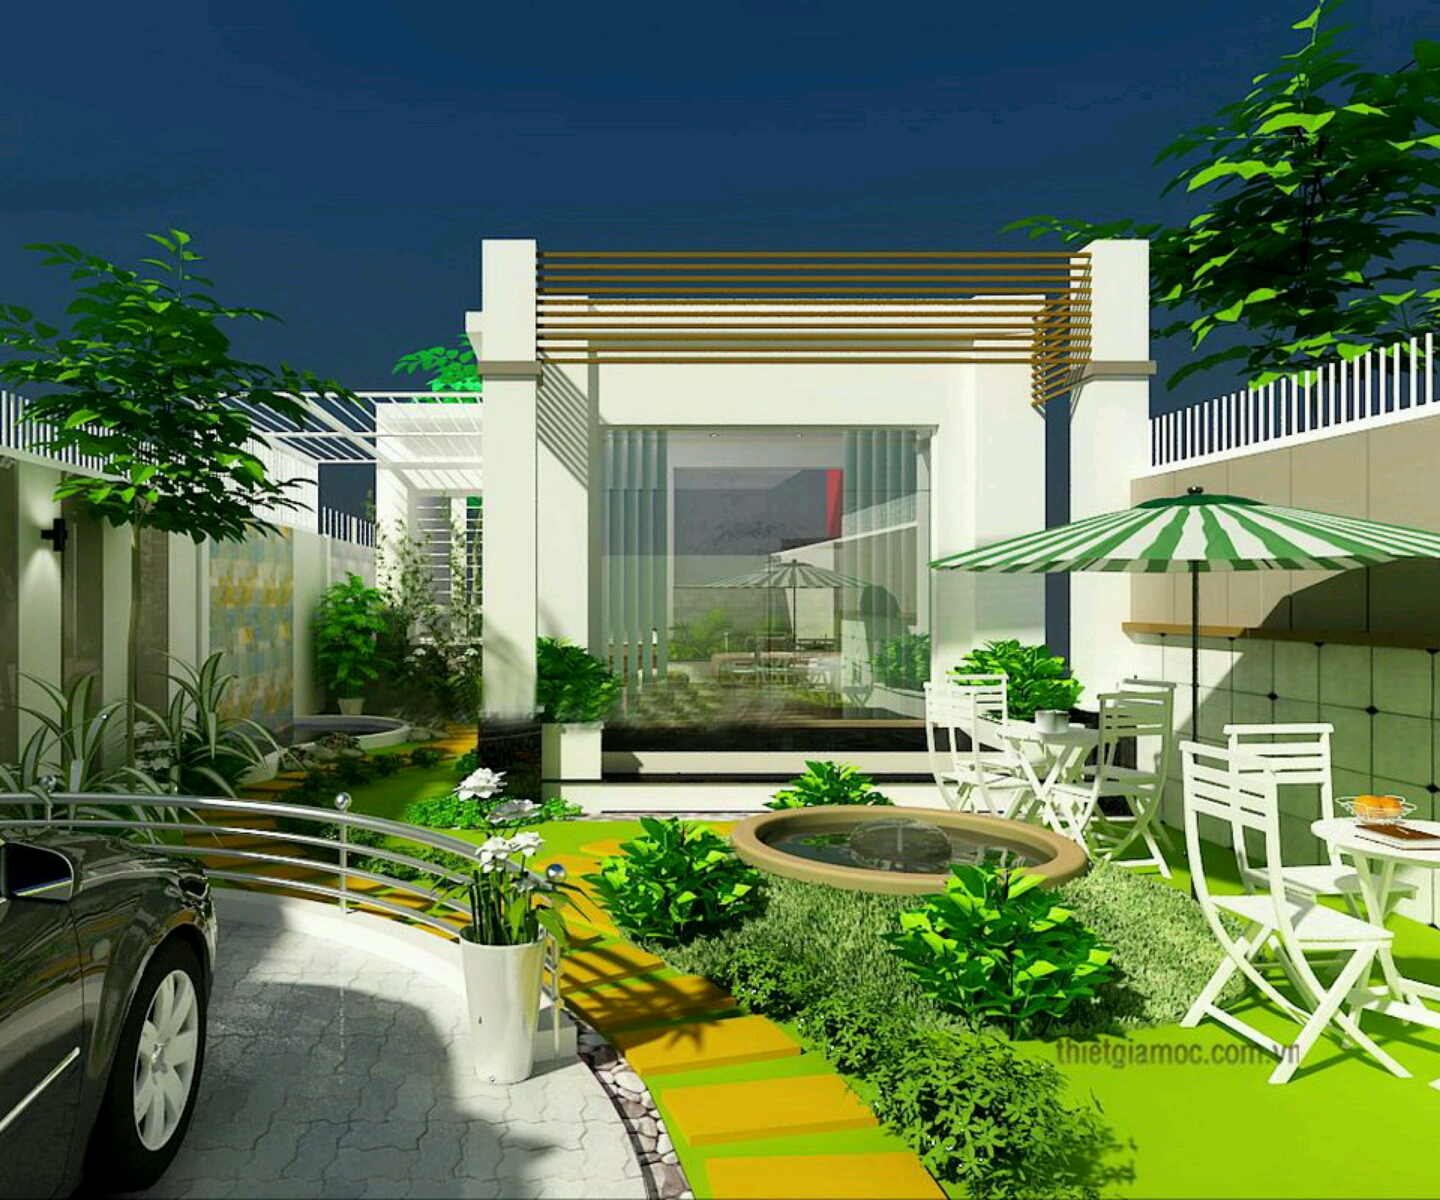 New home designs latest modern homes beautiful garden for Home garden ideas